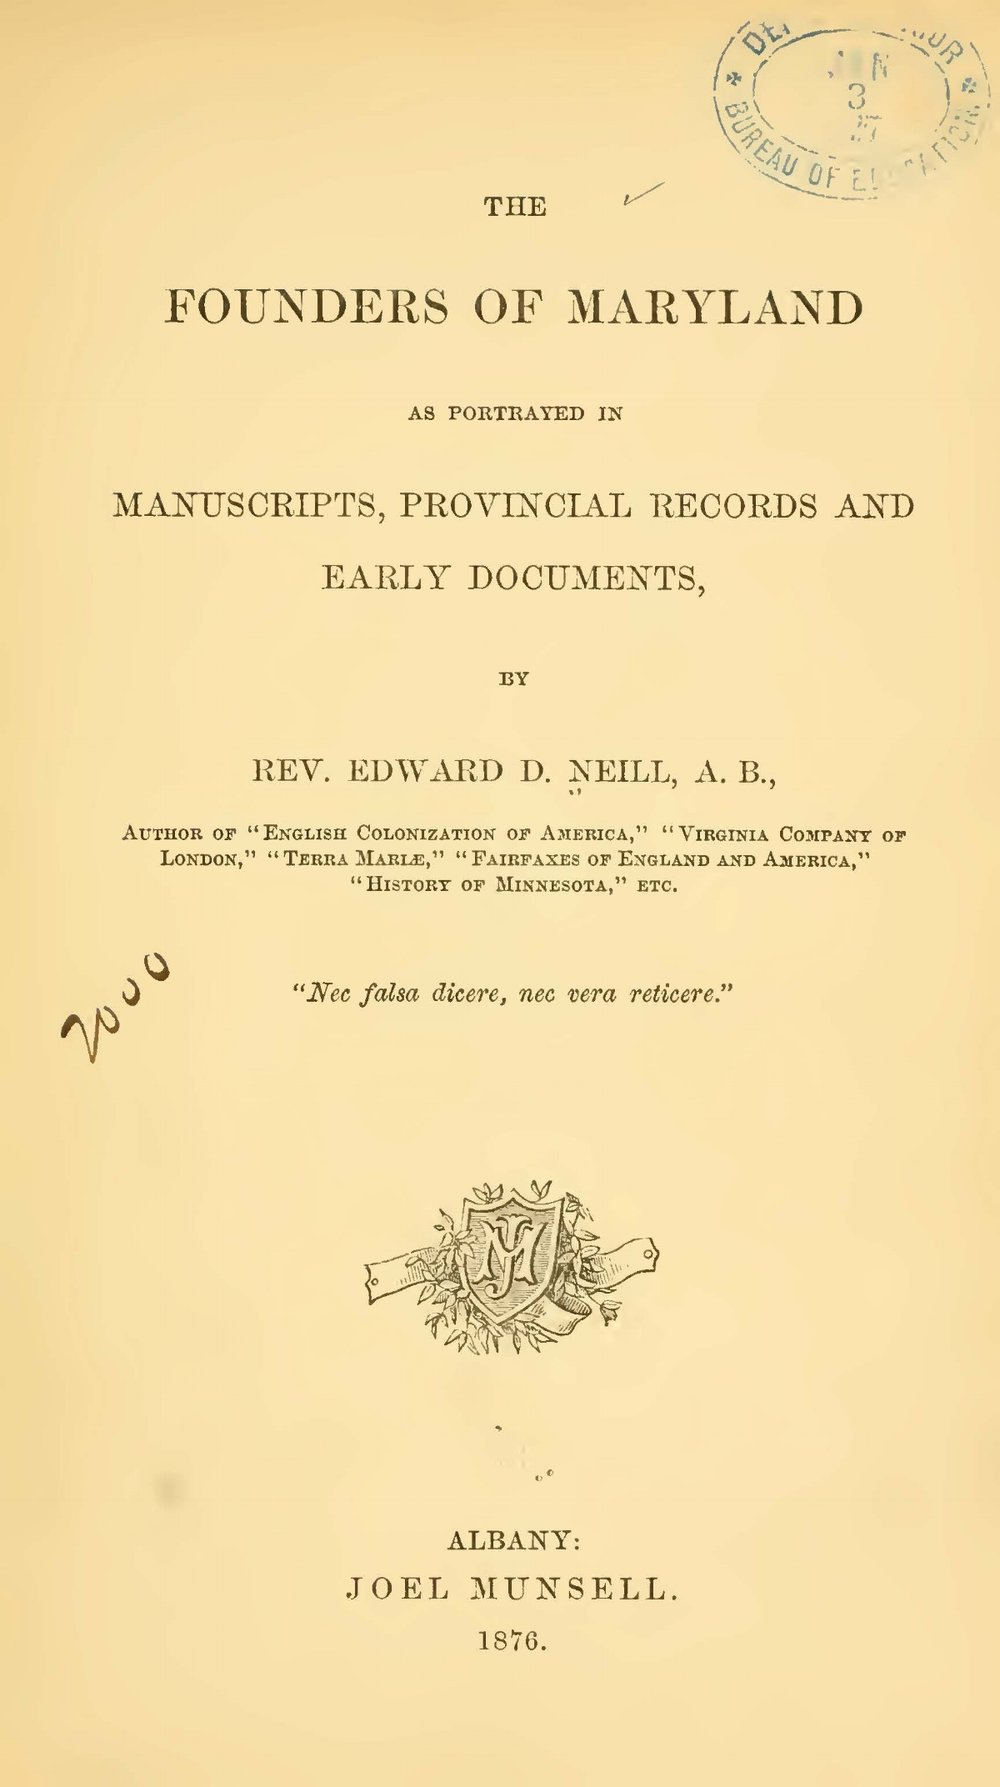 Neill, Edward Duffield, The Founders of Maryland Title Page.jpg